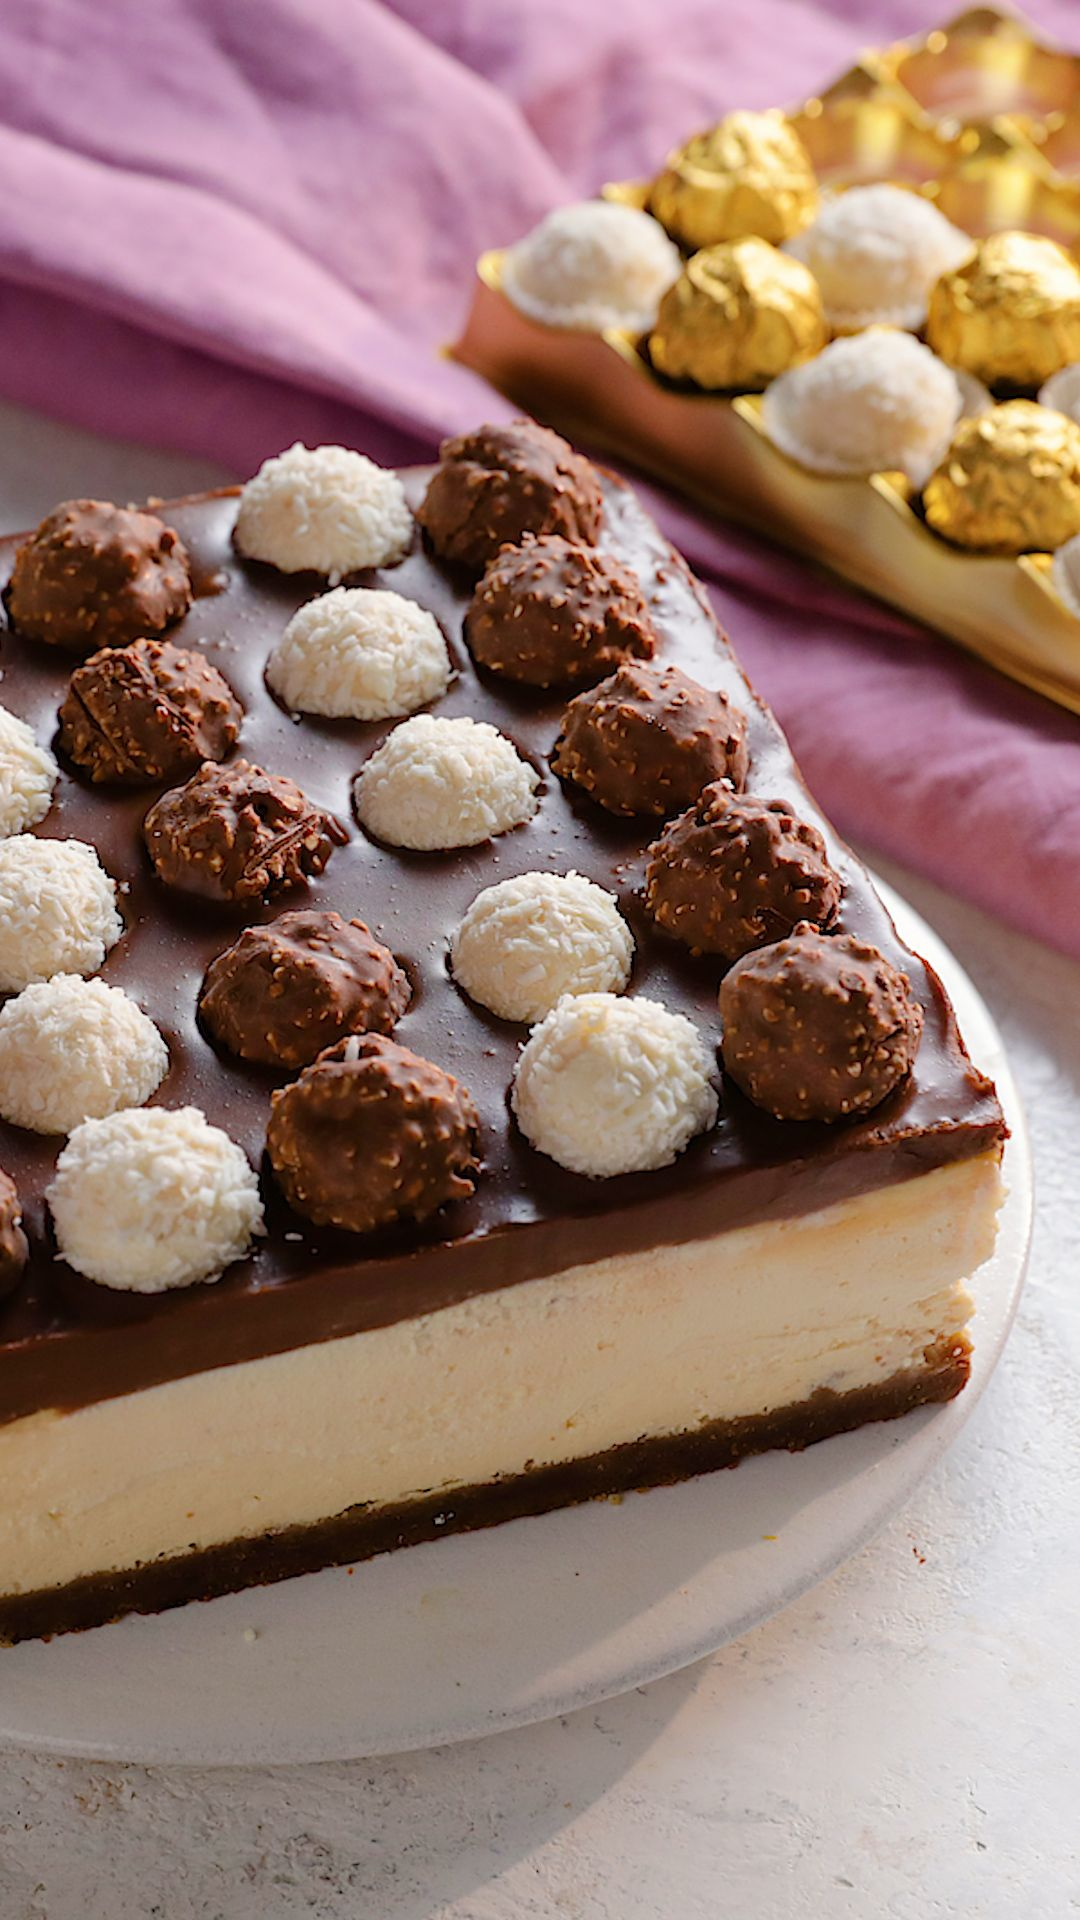 Cheesecake Ferrero Rocher #cheesecake